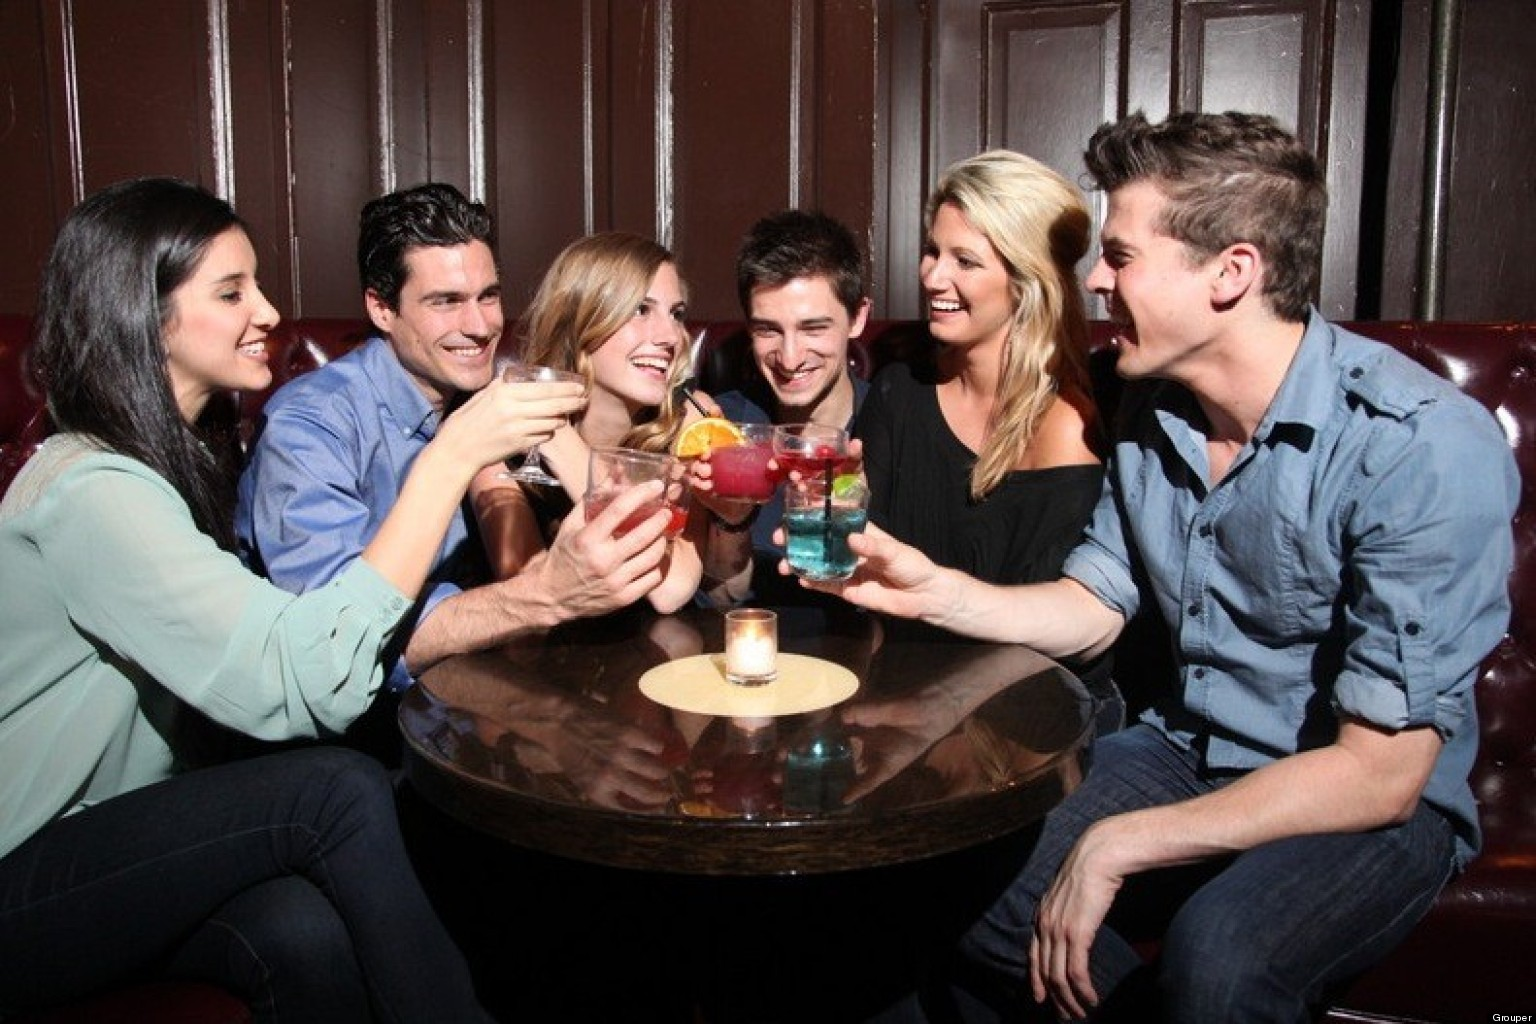 group dating boston